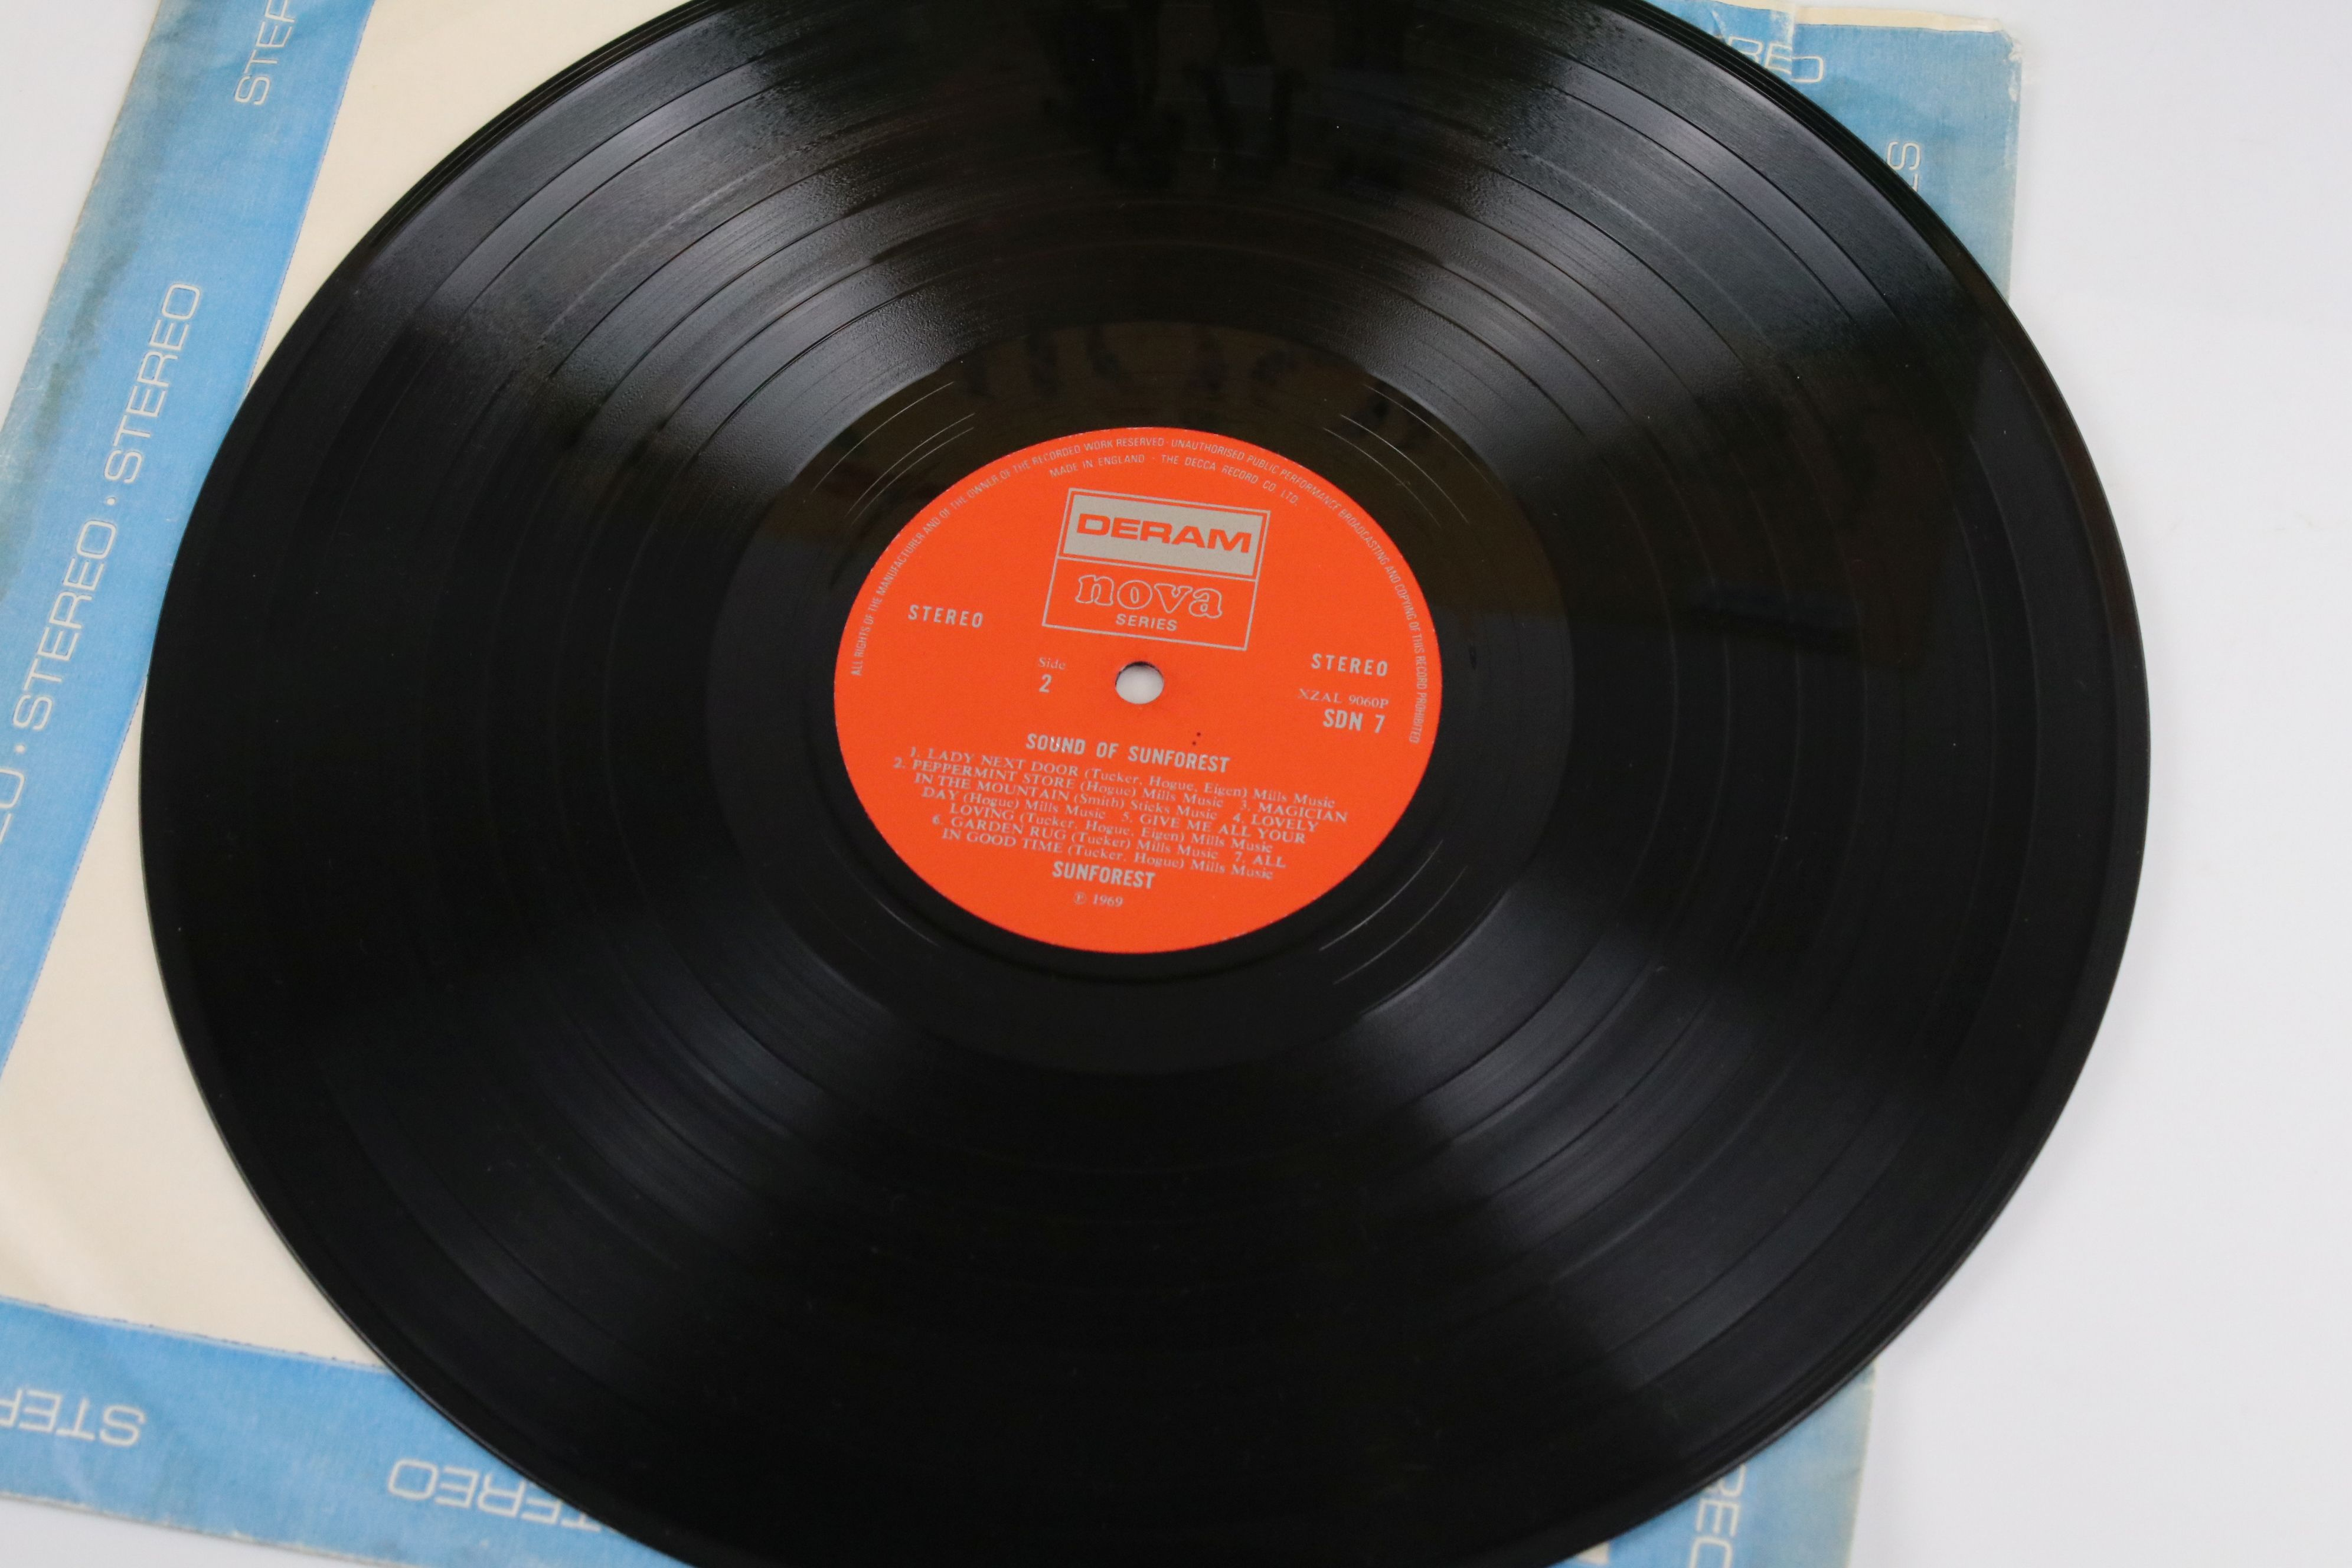 Vinyl - Sunforest Sound of Sunforest LP on Deram / Nova SDNT stereo, red and silver label, laminated - Image 2 of 6